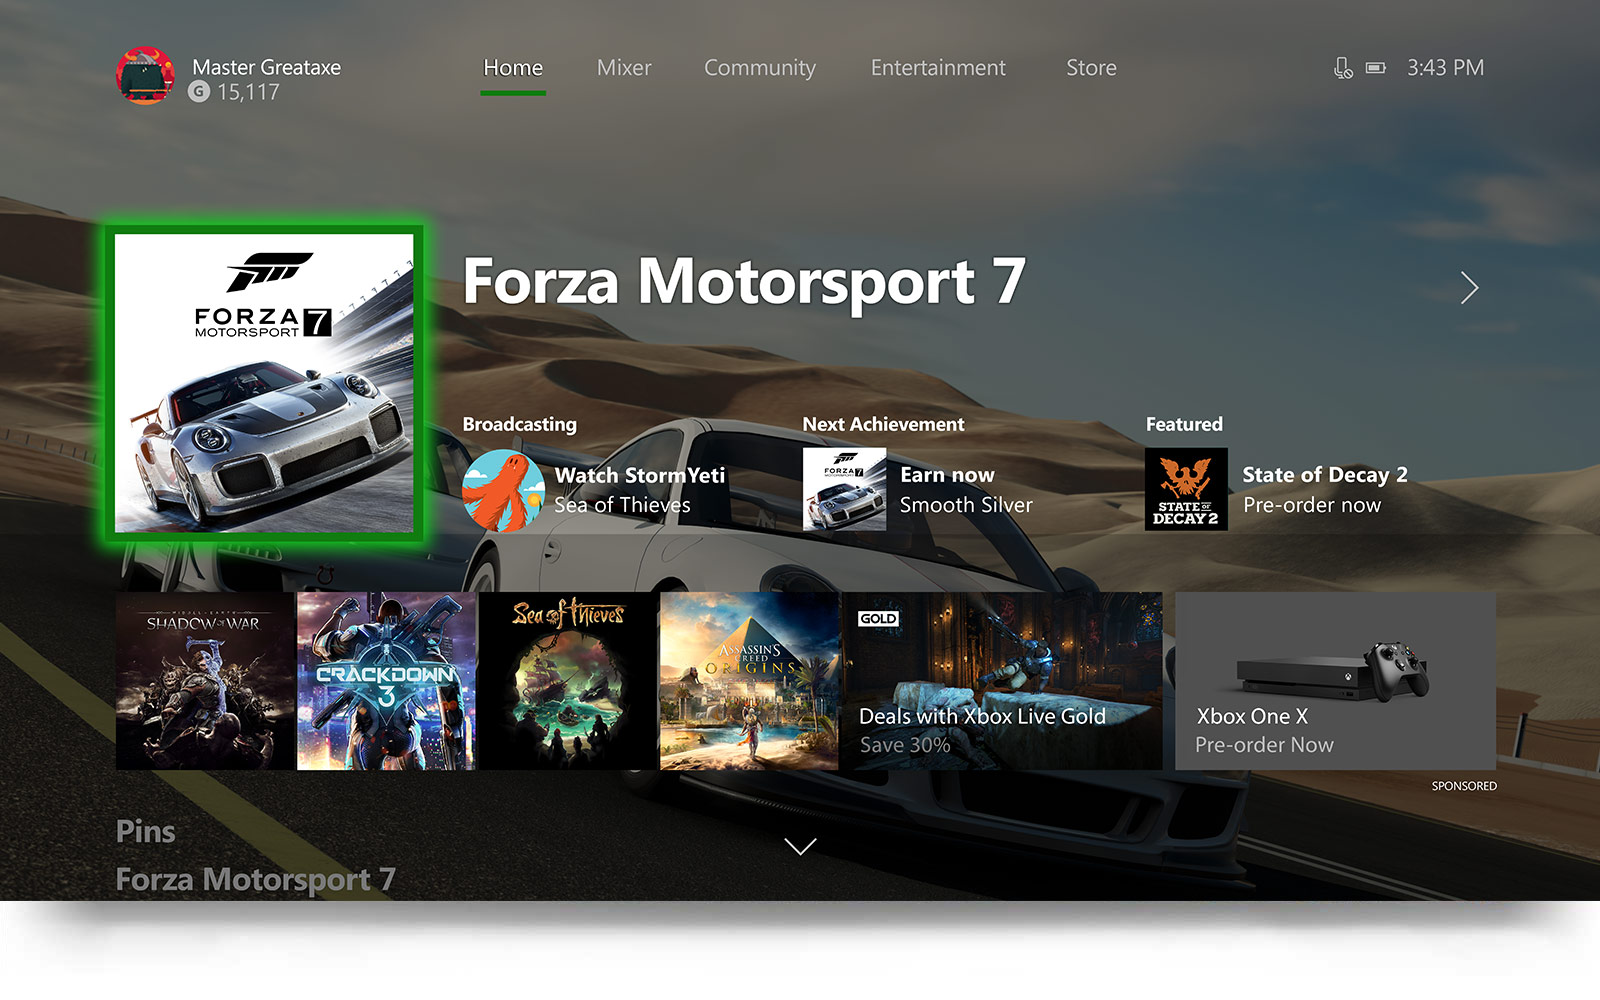 The new home screen for the Xbox dash